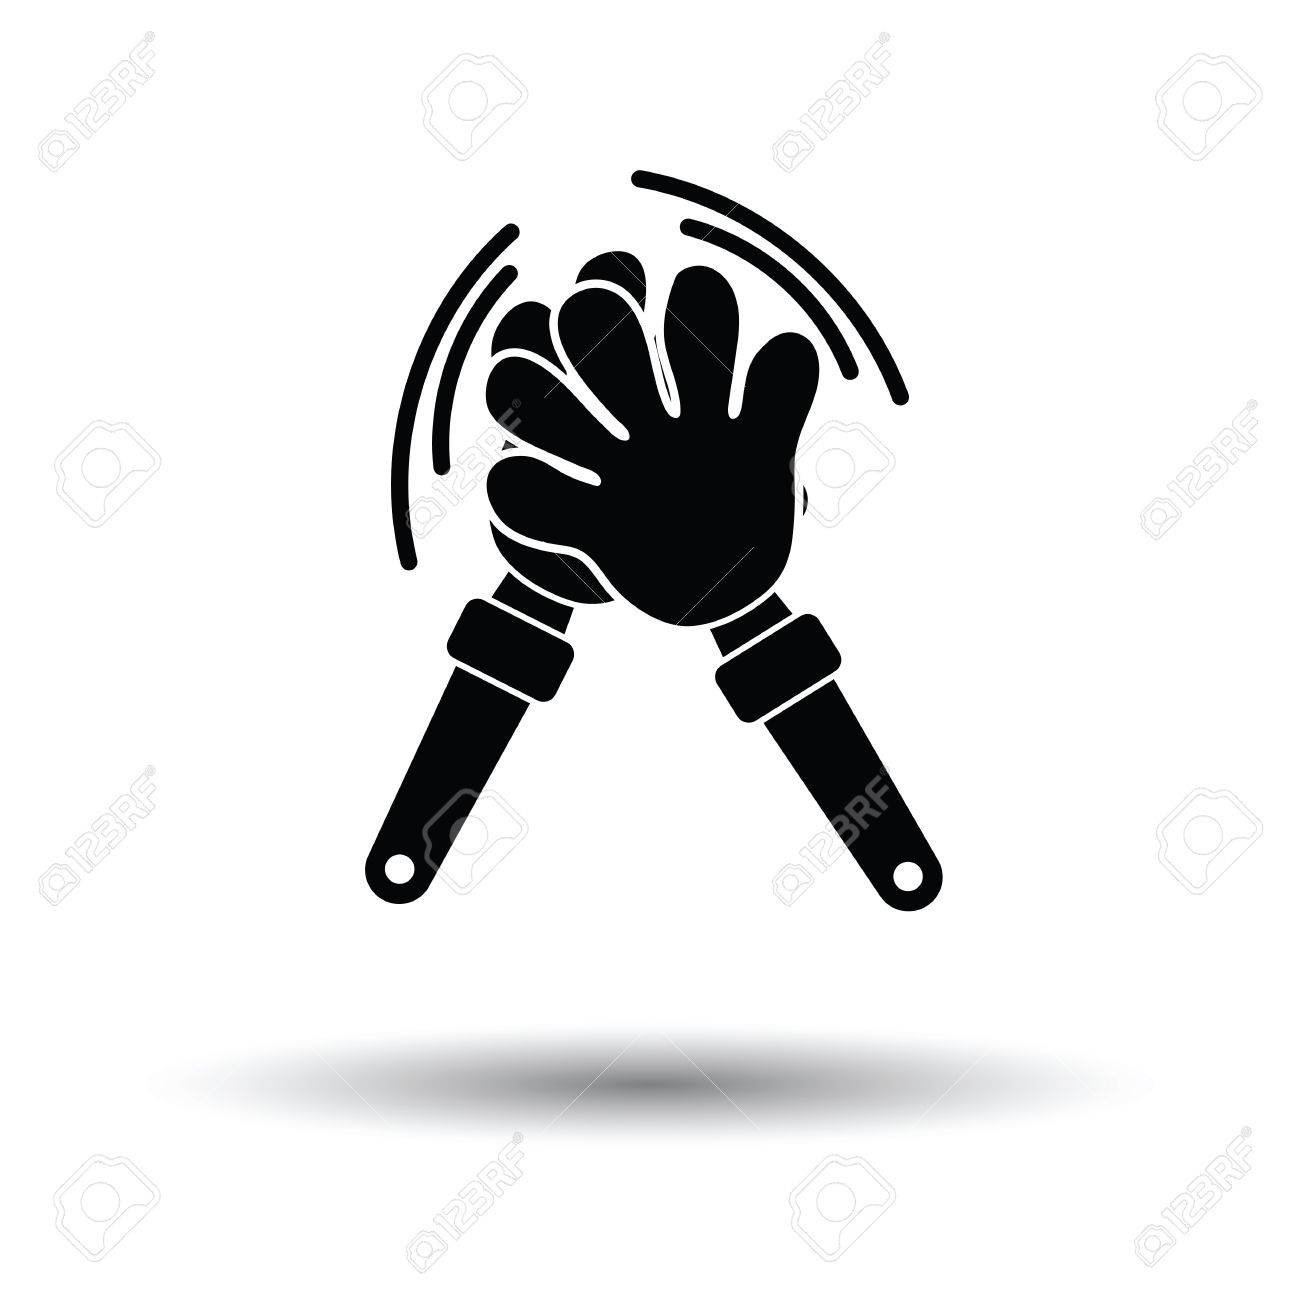 Football fans clap hand toy icon. White background with shadow design. Vector illustration. - 68714788